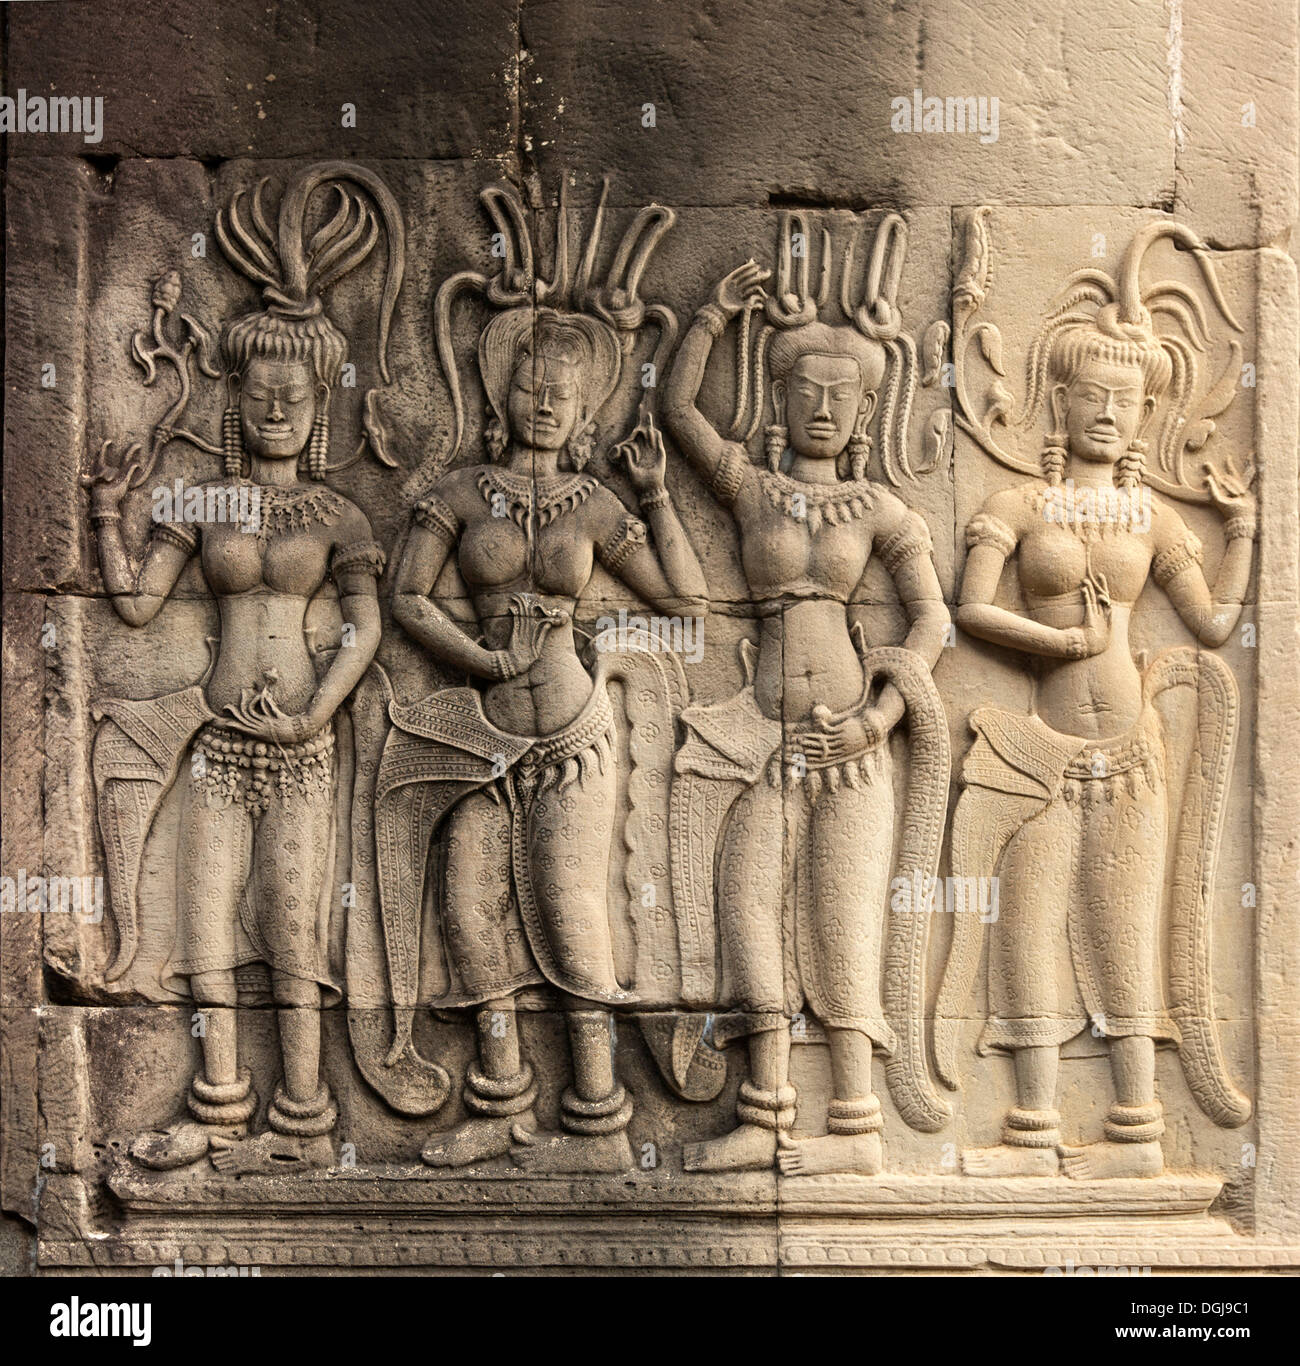 Bas-relief of a group of Devatas or divine temple guardians, gallery on the second level, Angkor Wat Temple Complex, Siem Reap - Stock Image